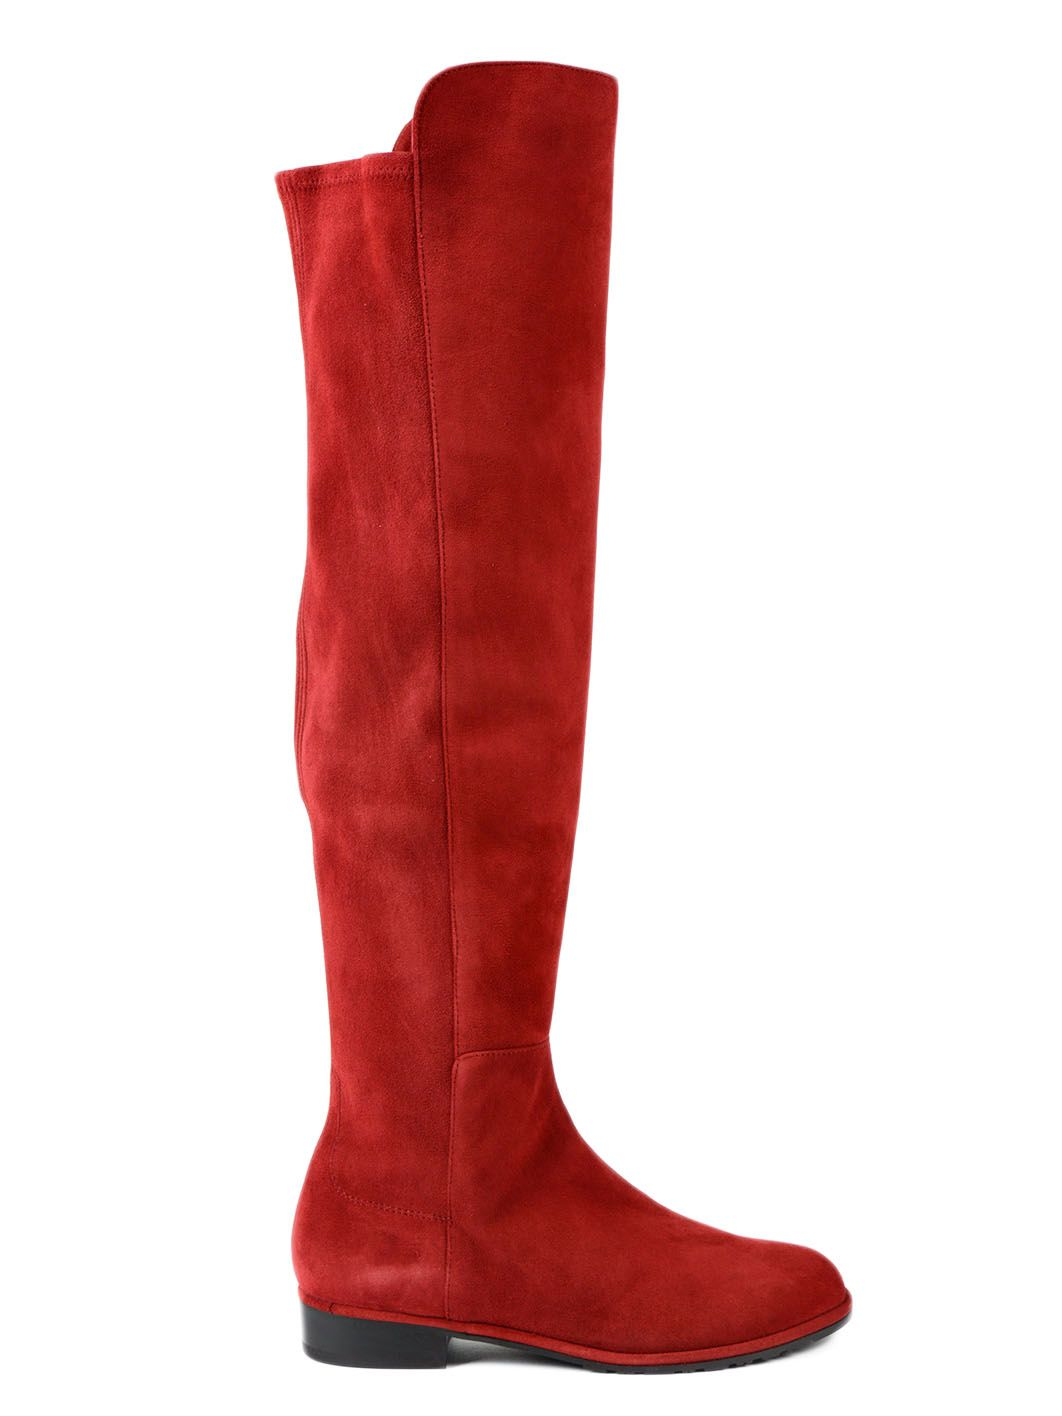 Stuart Weitzman Allgood Over-the-knee Boots